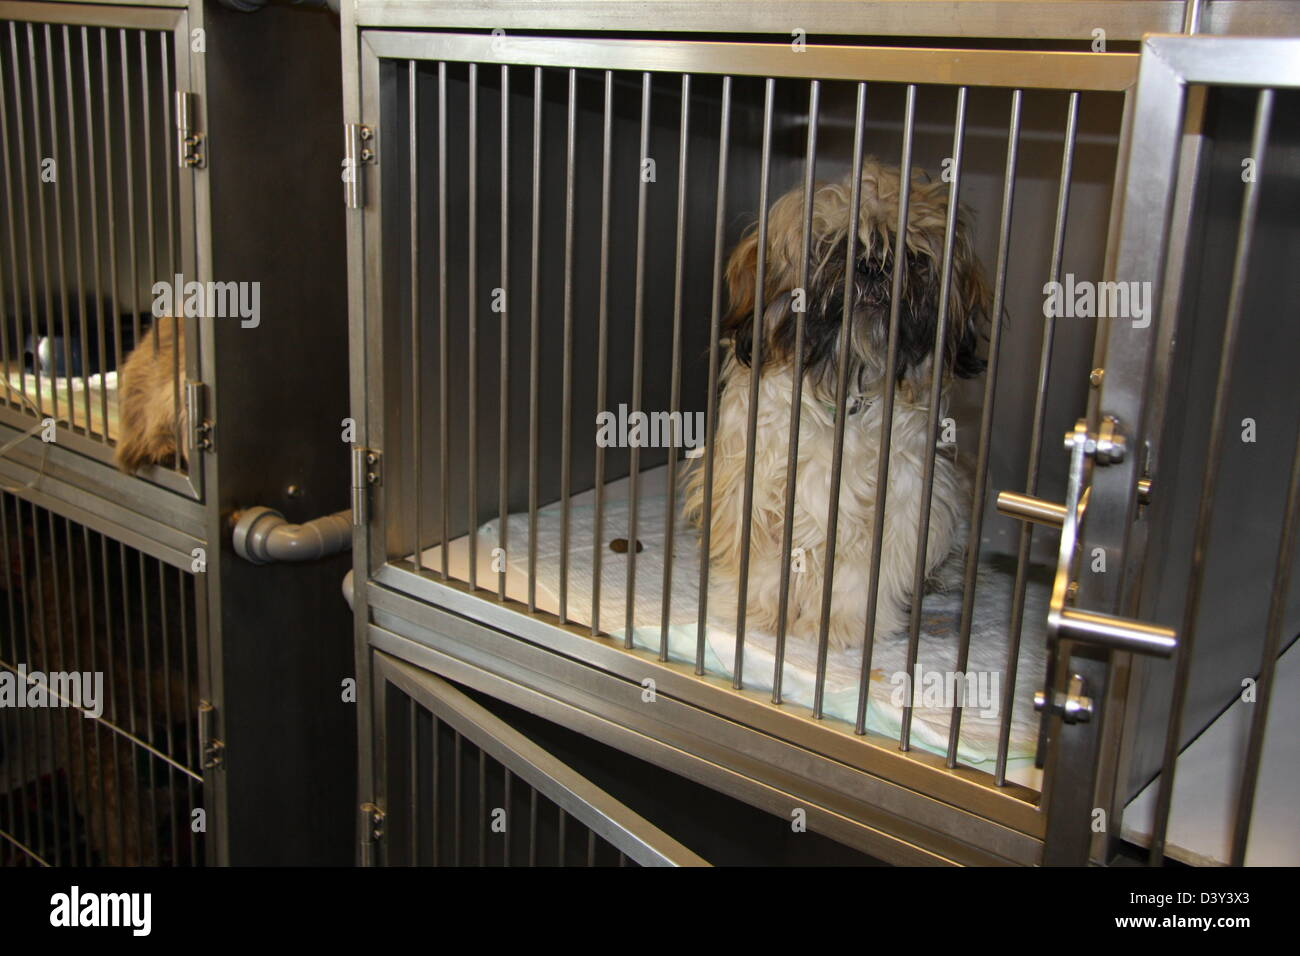 dog in a cage at the vet - Stock Image